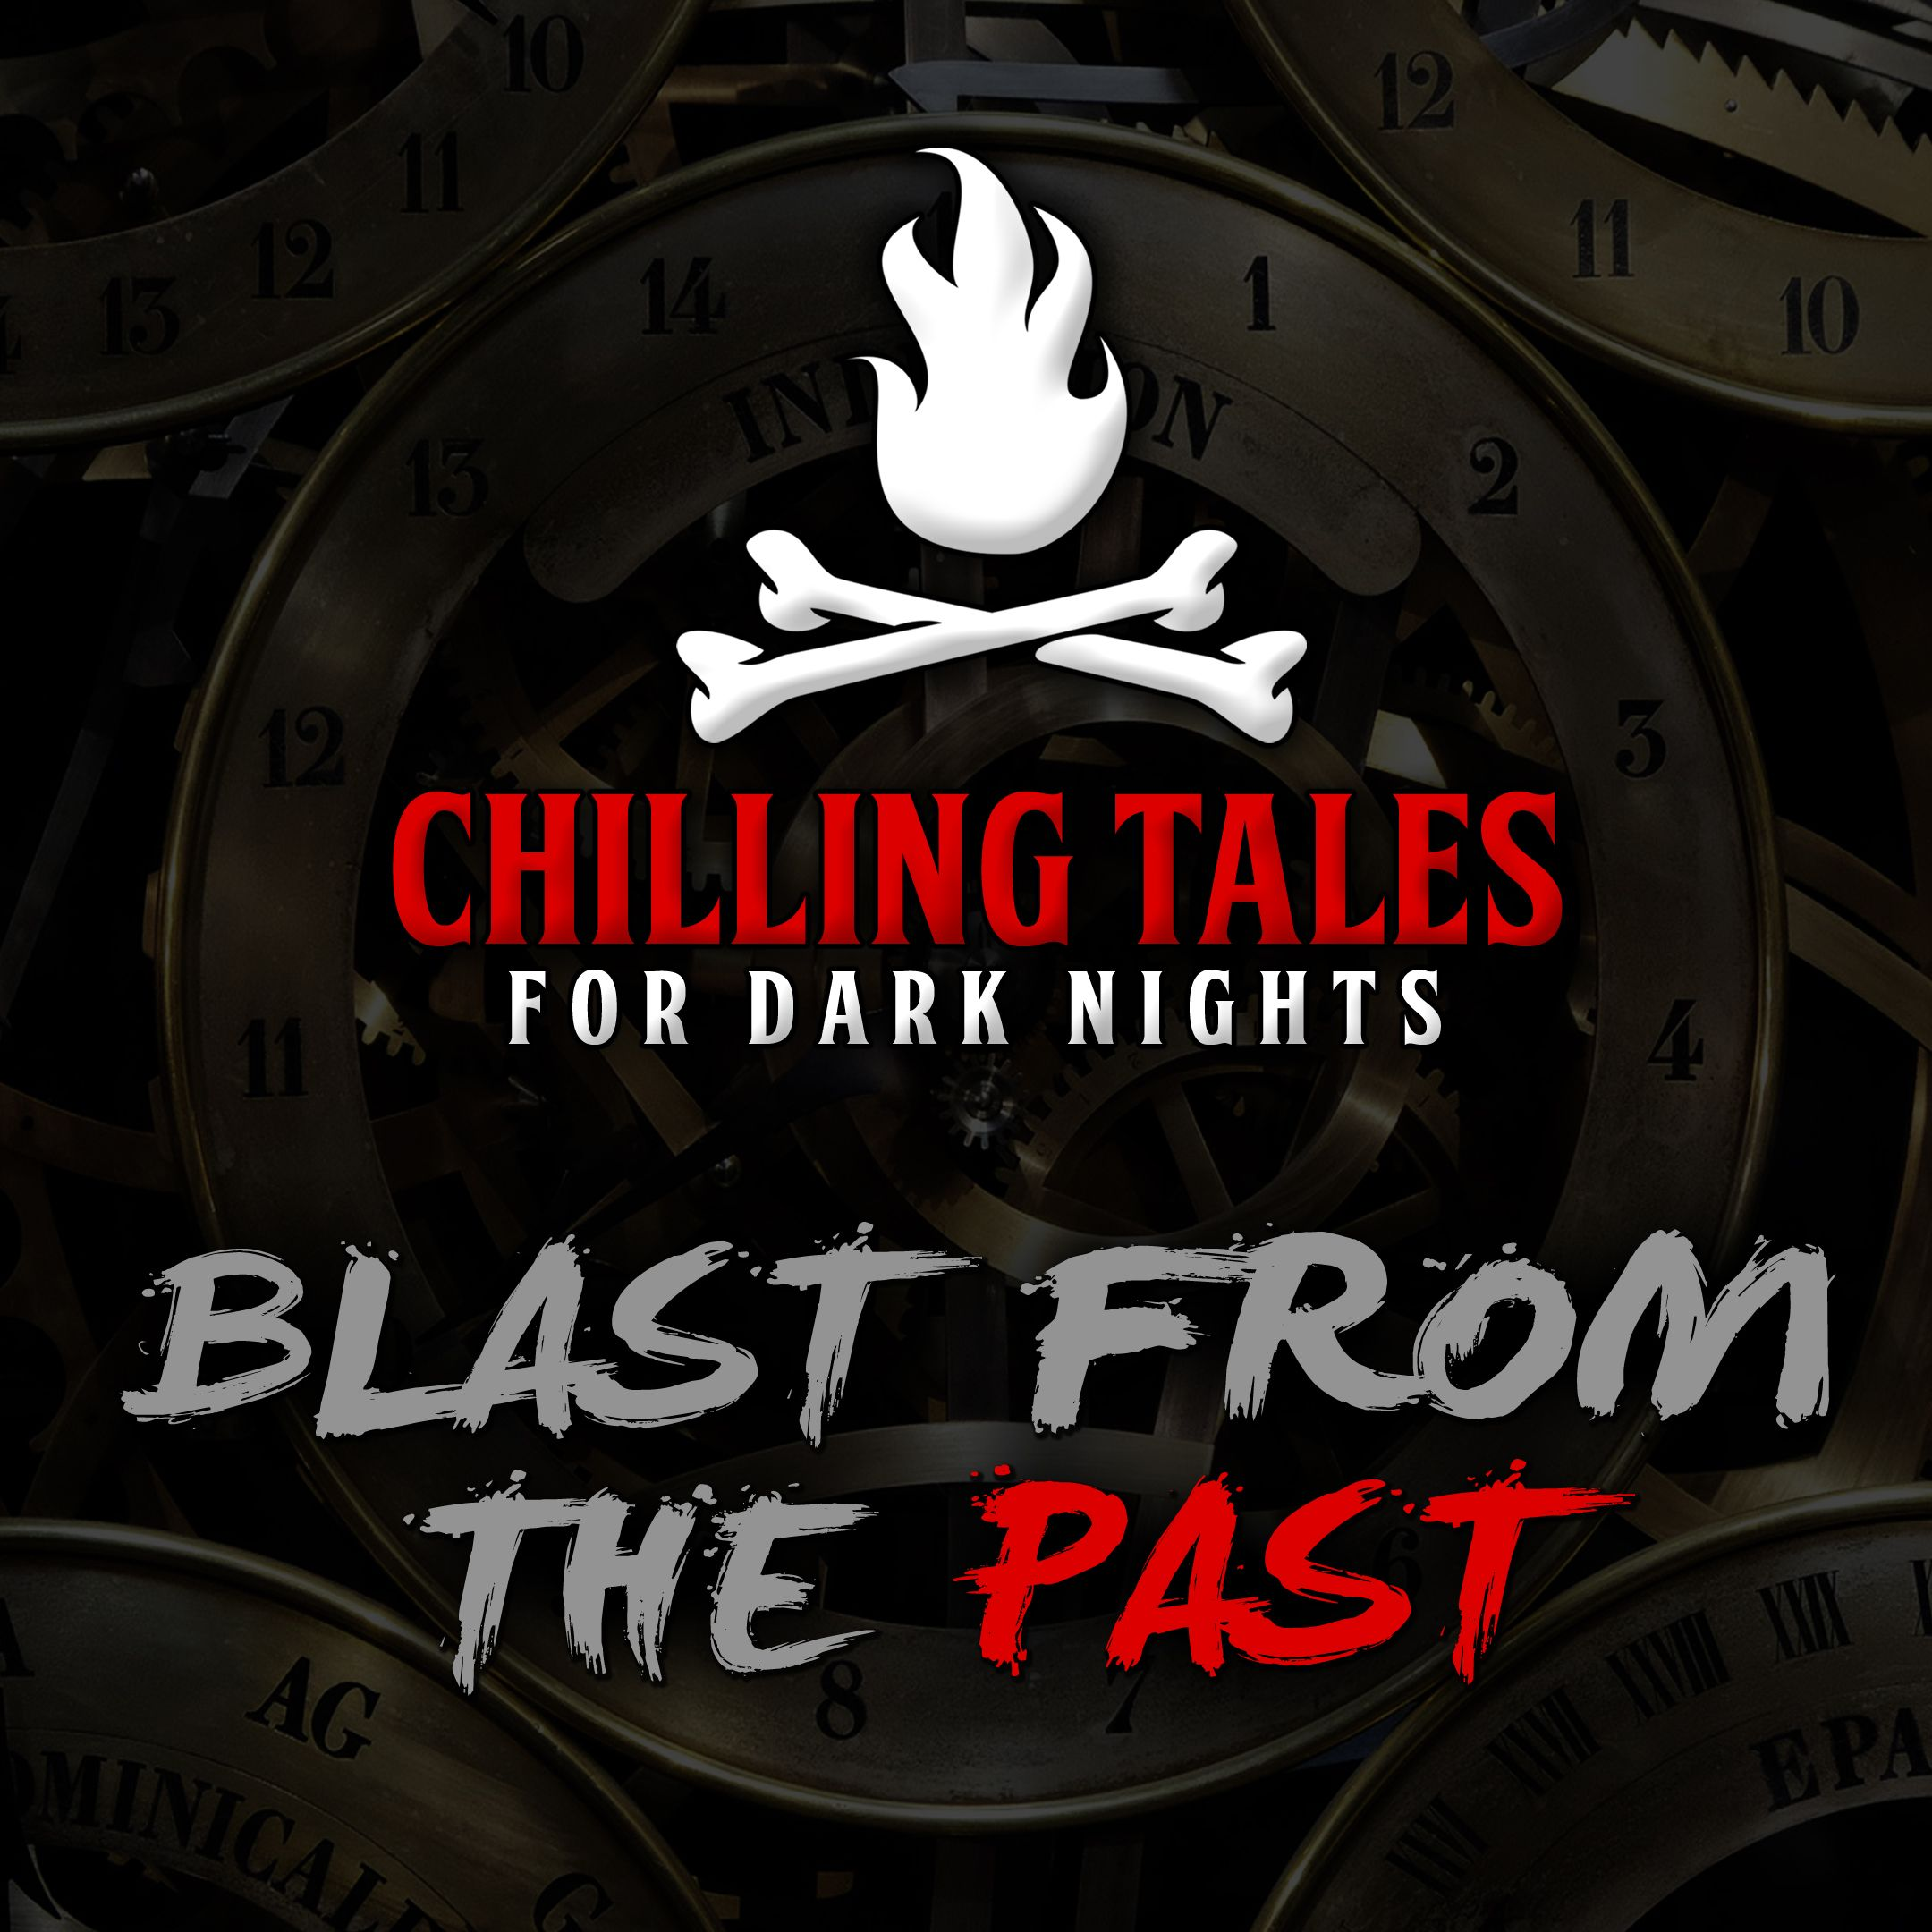 71: Blast from the Past – Chilling Tales for Dark Nights